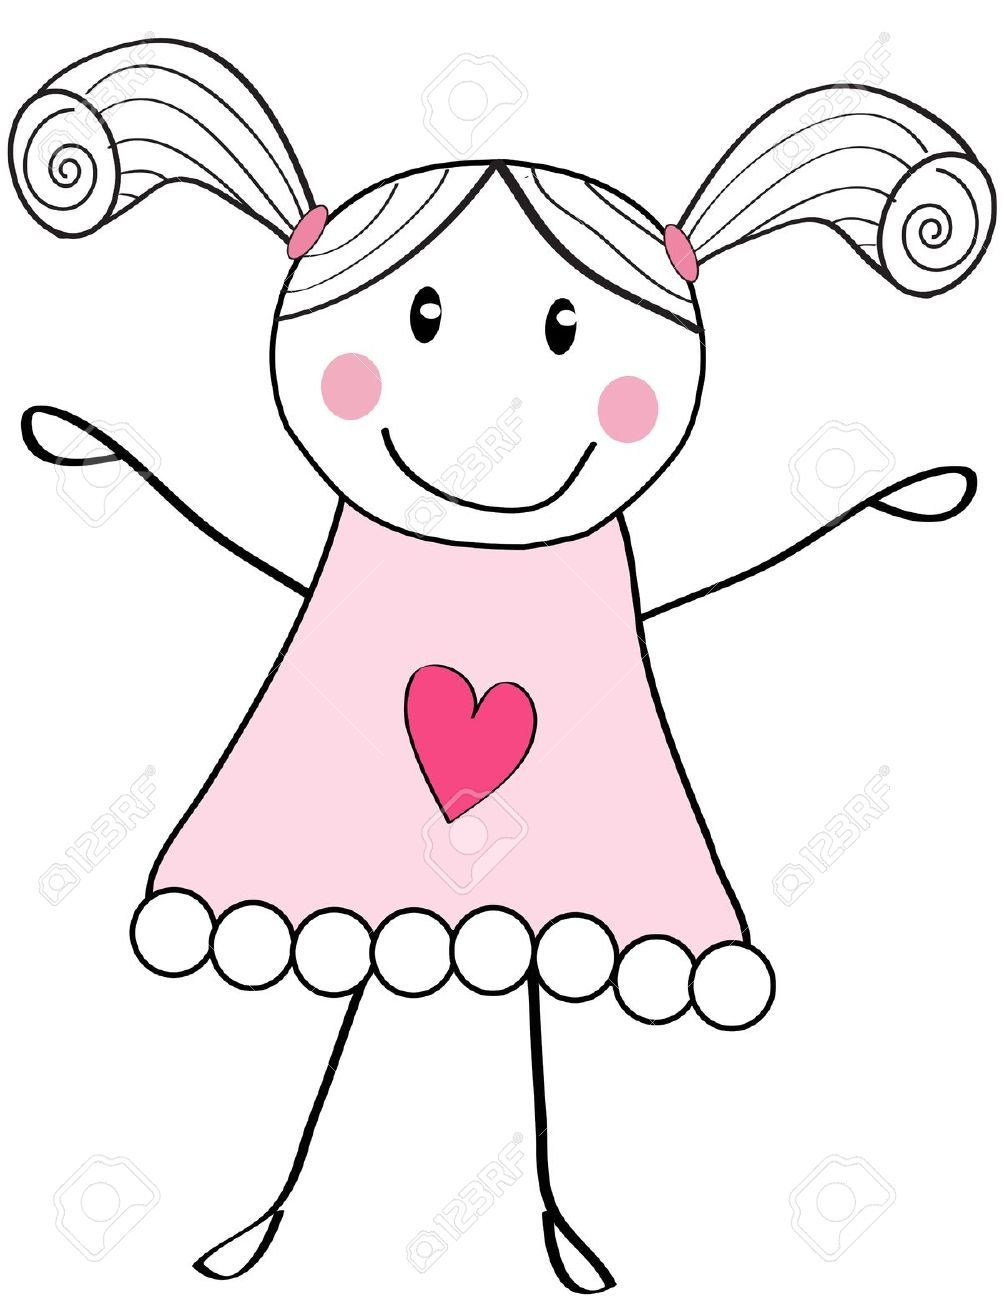 1004x1300 Image Result For Cute Little Girl Sketches Crafts